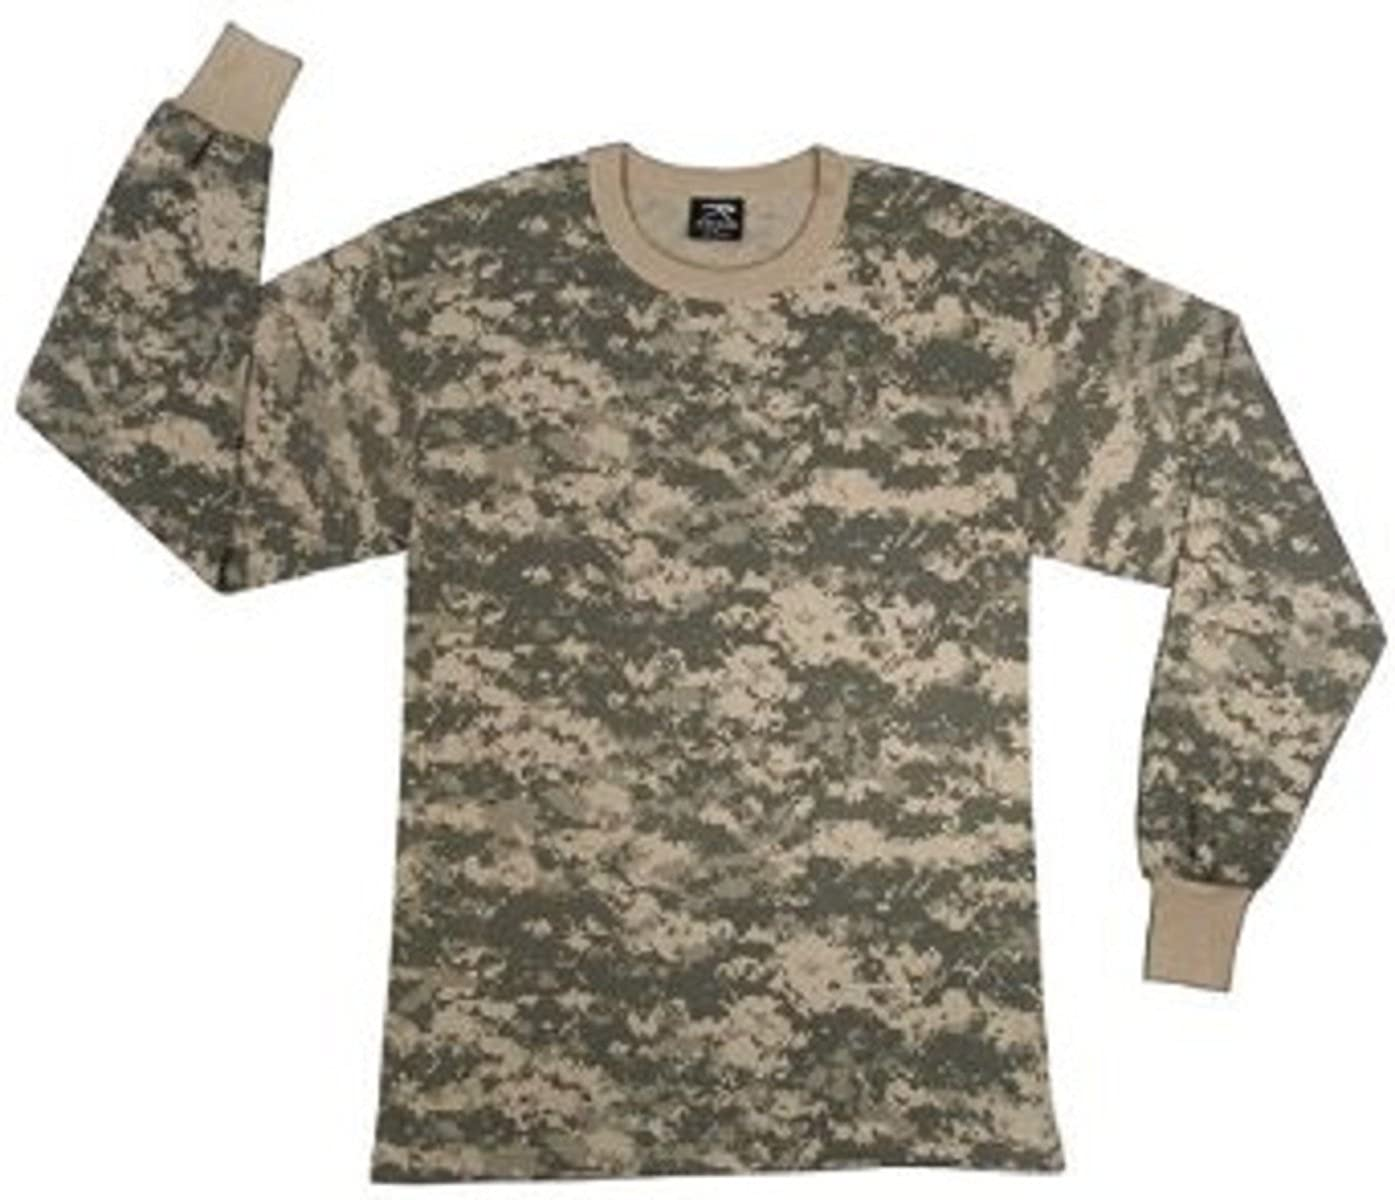 Amazon.com  Army Universe ACU Digital Camouflage Boys Long Sleeve T-Shirt  (Large)  Military Apparel Shirts  Clothing 0b687963650